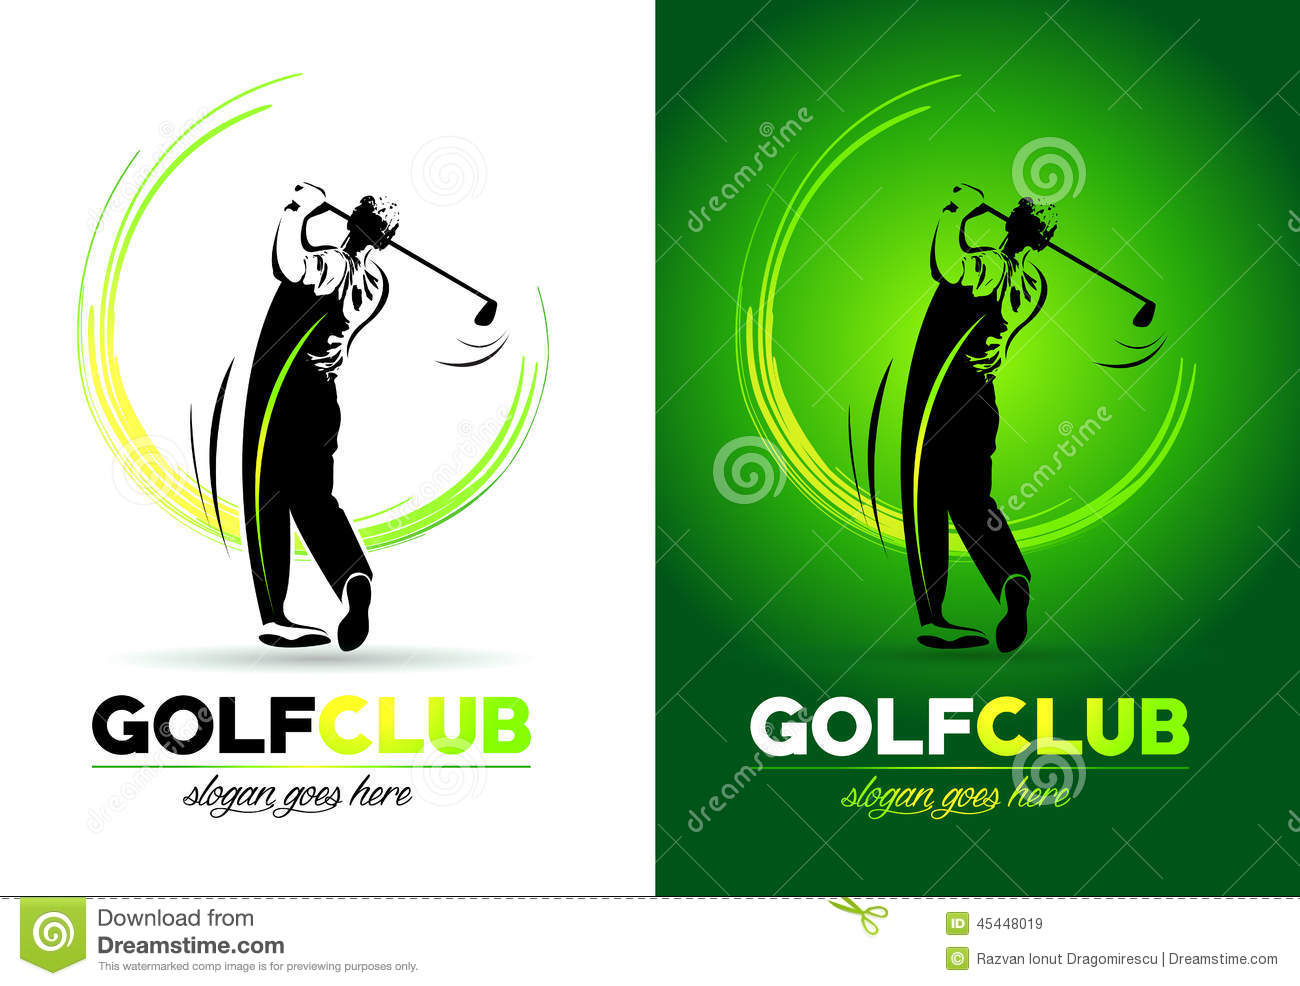 ... representing an abstract golf club player logo hitting the ball